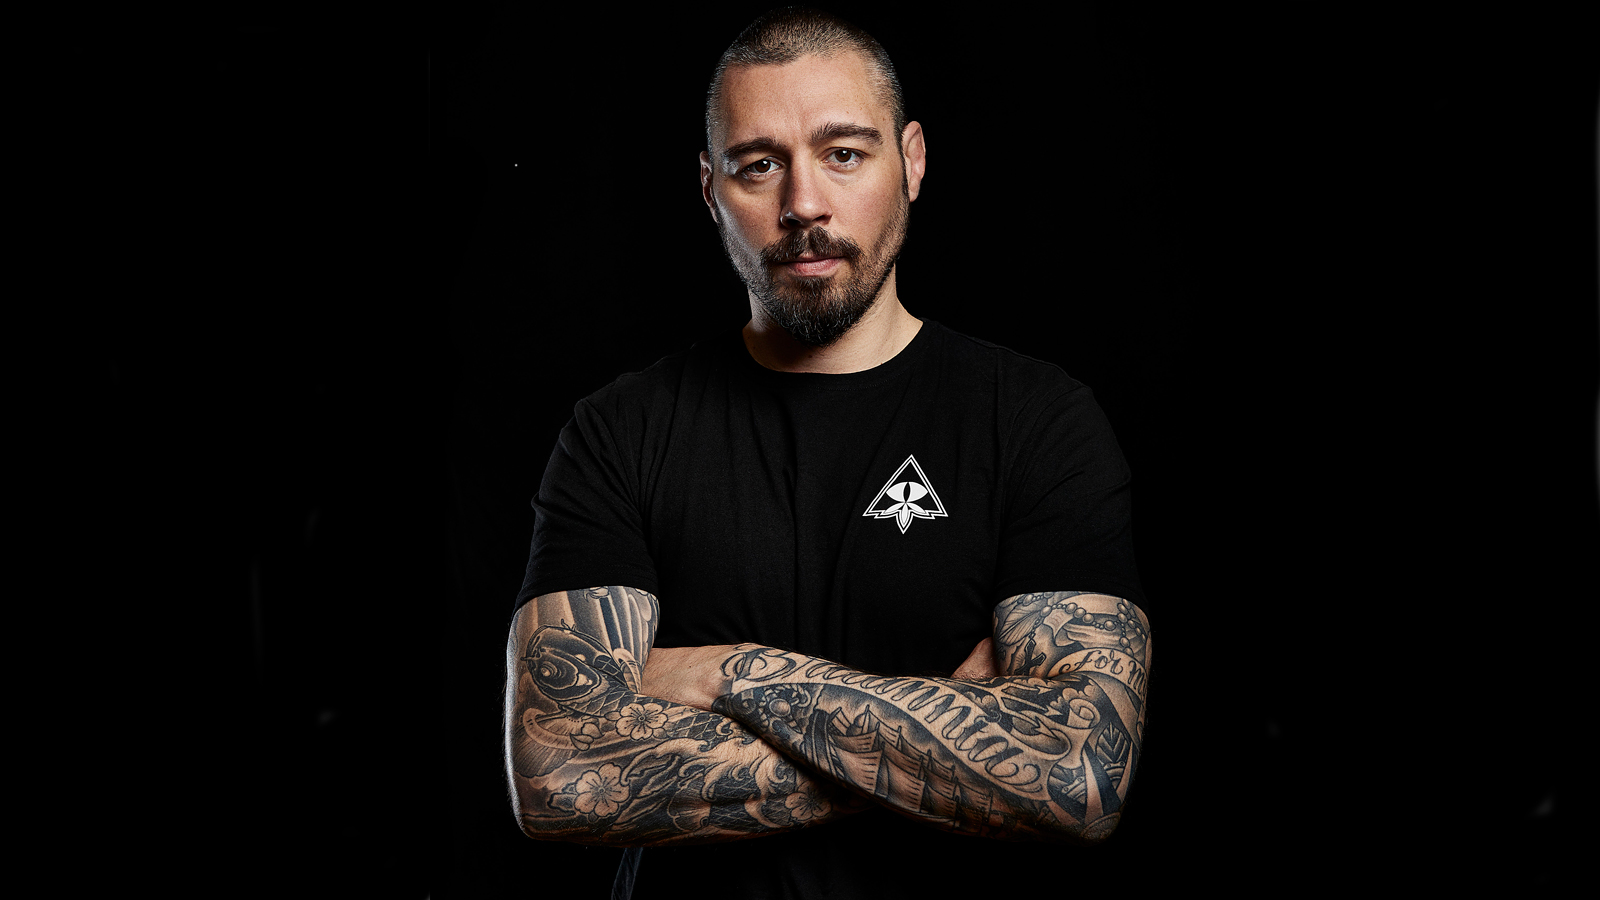 Ufcs Dan Hardy On Mmas Rebel Past How Pantera Got Him Too Angry